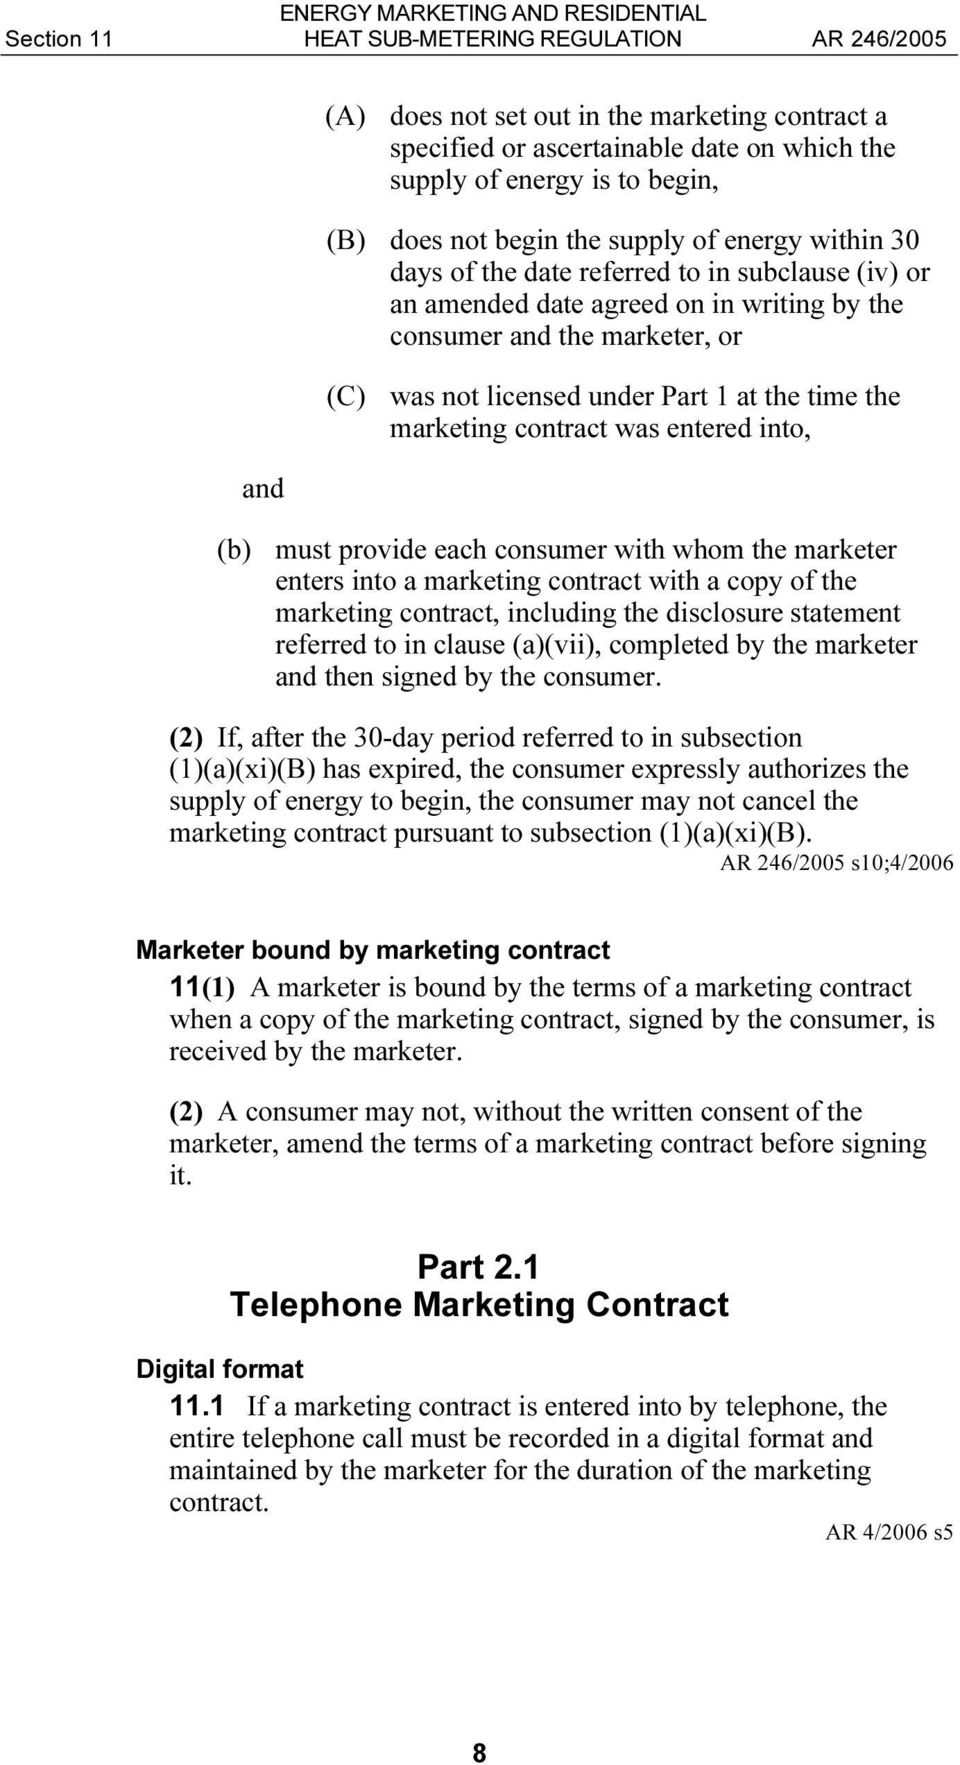 marketing contract was entered into, (b) must provide each consumer with whom the marketer enters into a marketing contract with a copy of the marketing contract, including the disclosure statement